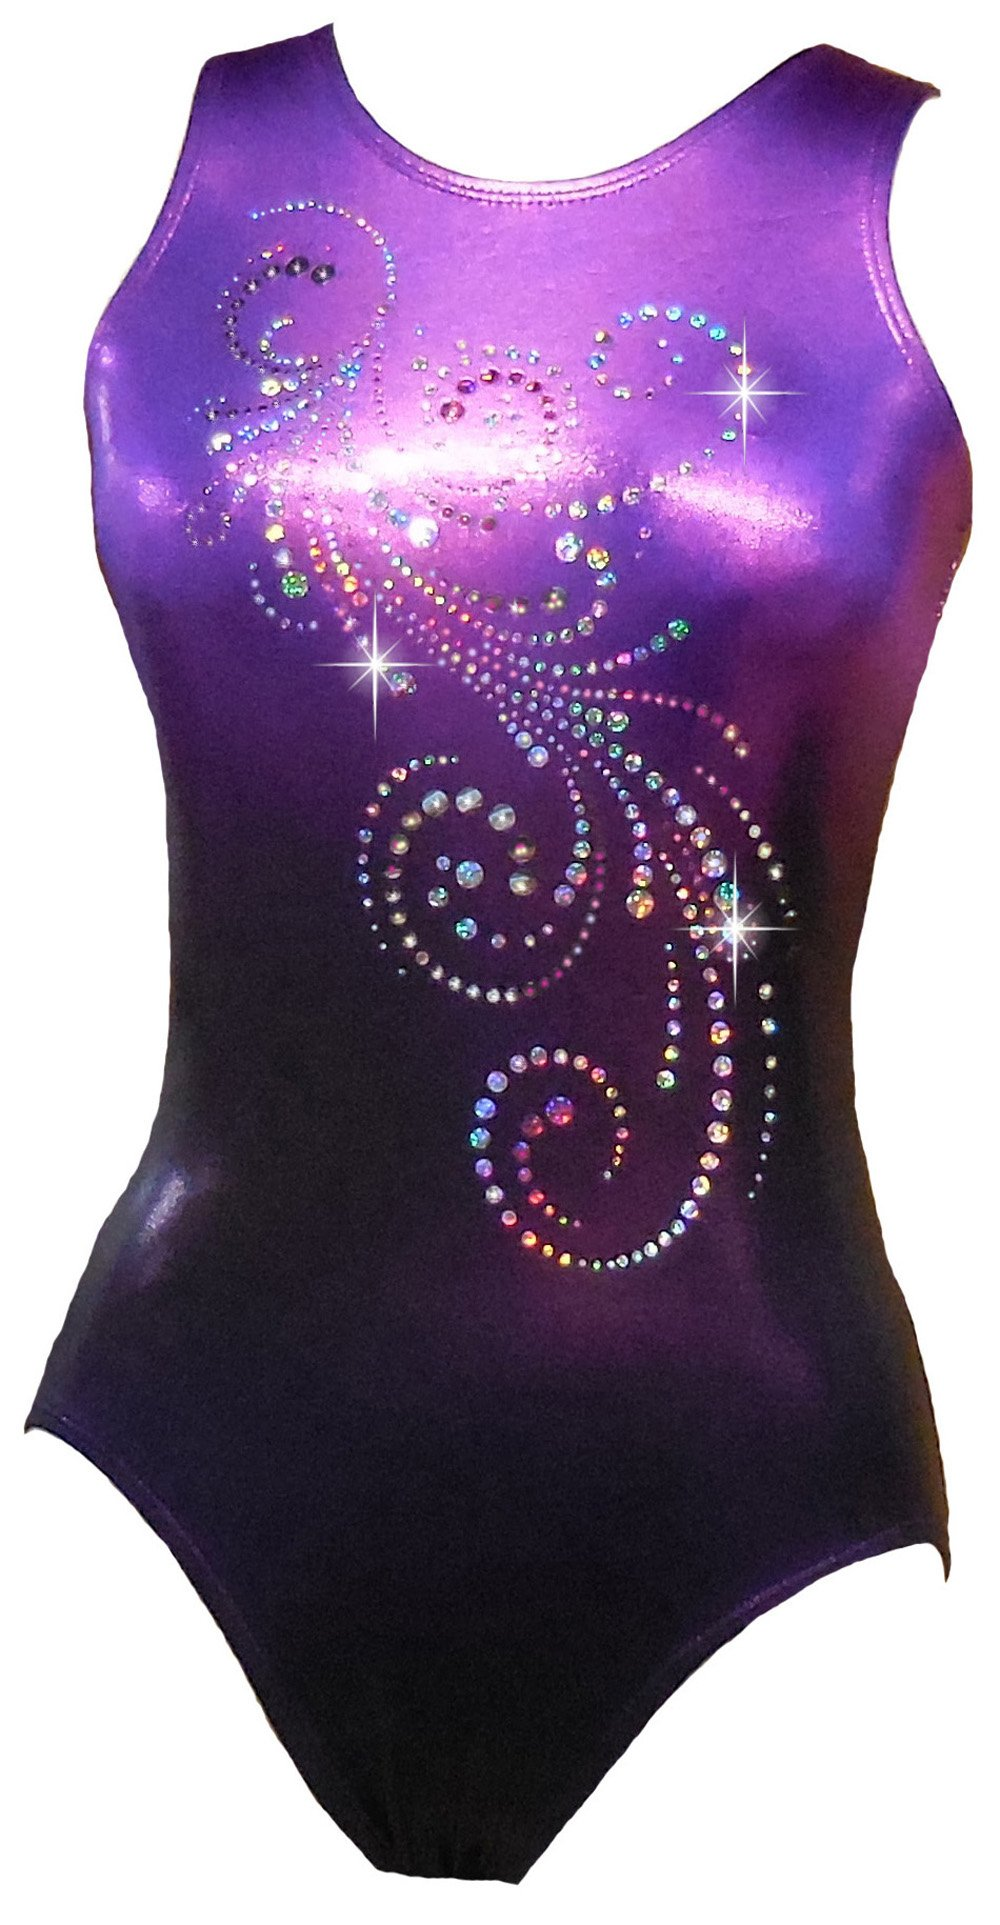 Look-It Activewear Deep Purple Ombre Sparkle Leotard for Gymnastics or Dance girls and women (Women's Medium (size 6-8)) by Look-It Activewear